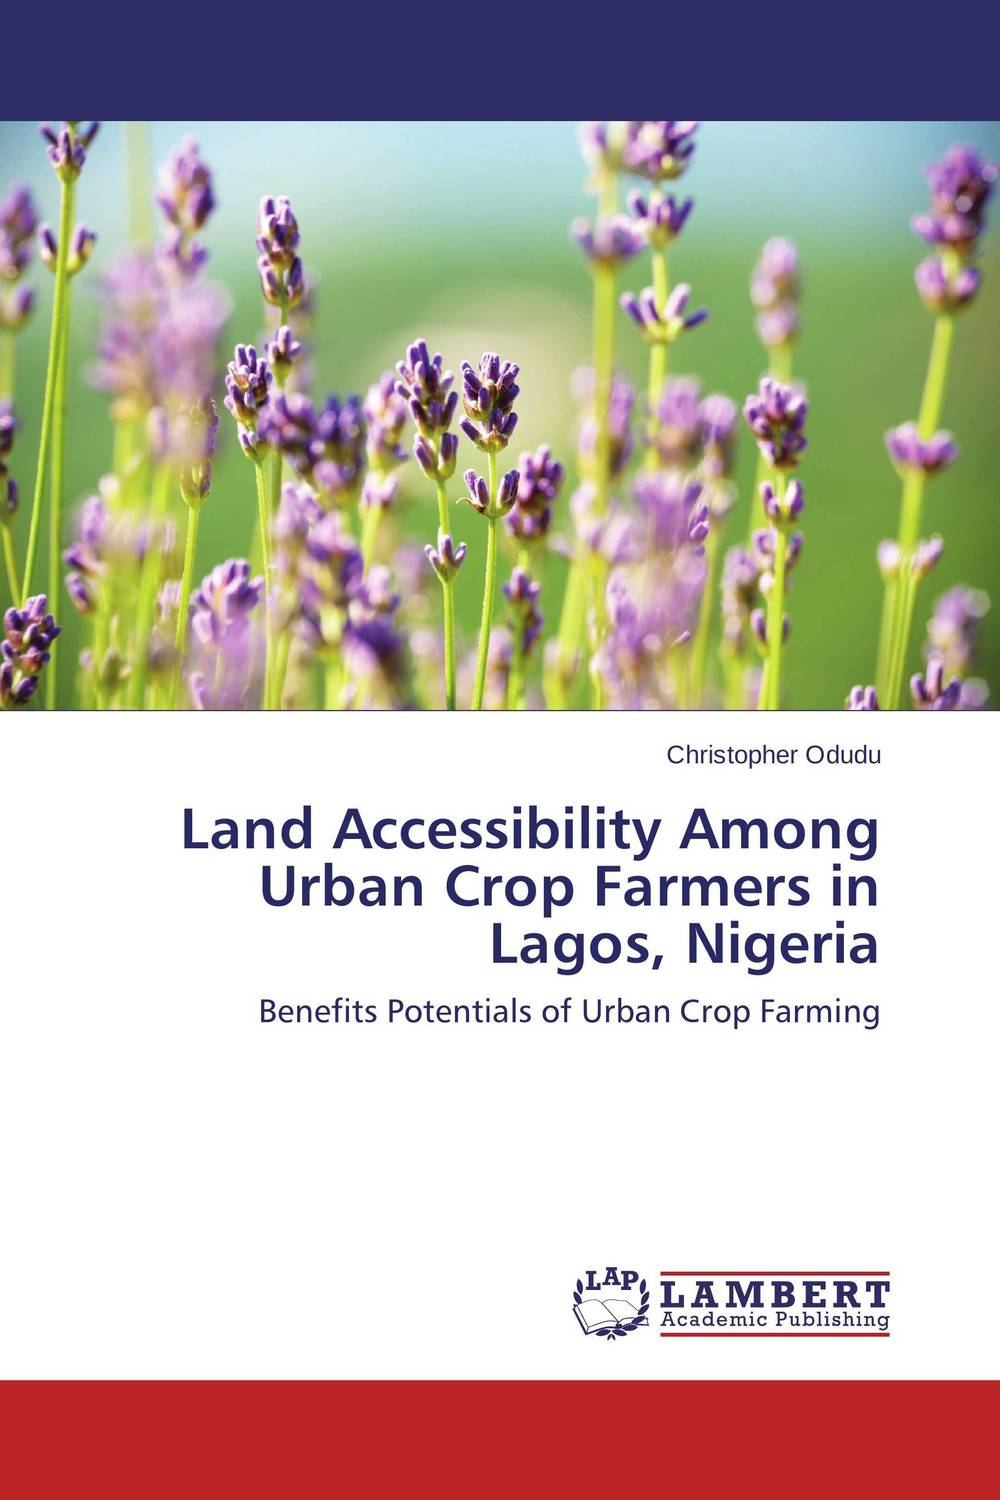 Land Accessibility Among Urban Crop Farmers in Lagos, Nigeria cold storage accessibility and agricultural production by smallholders